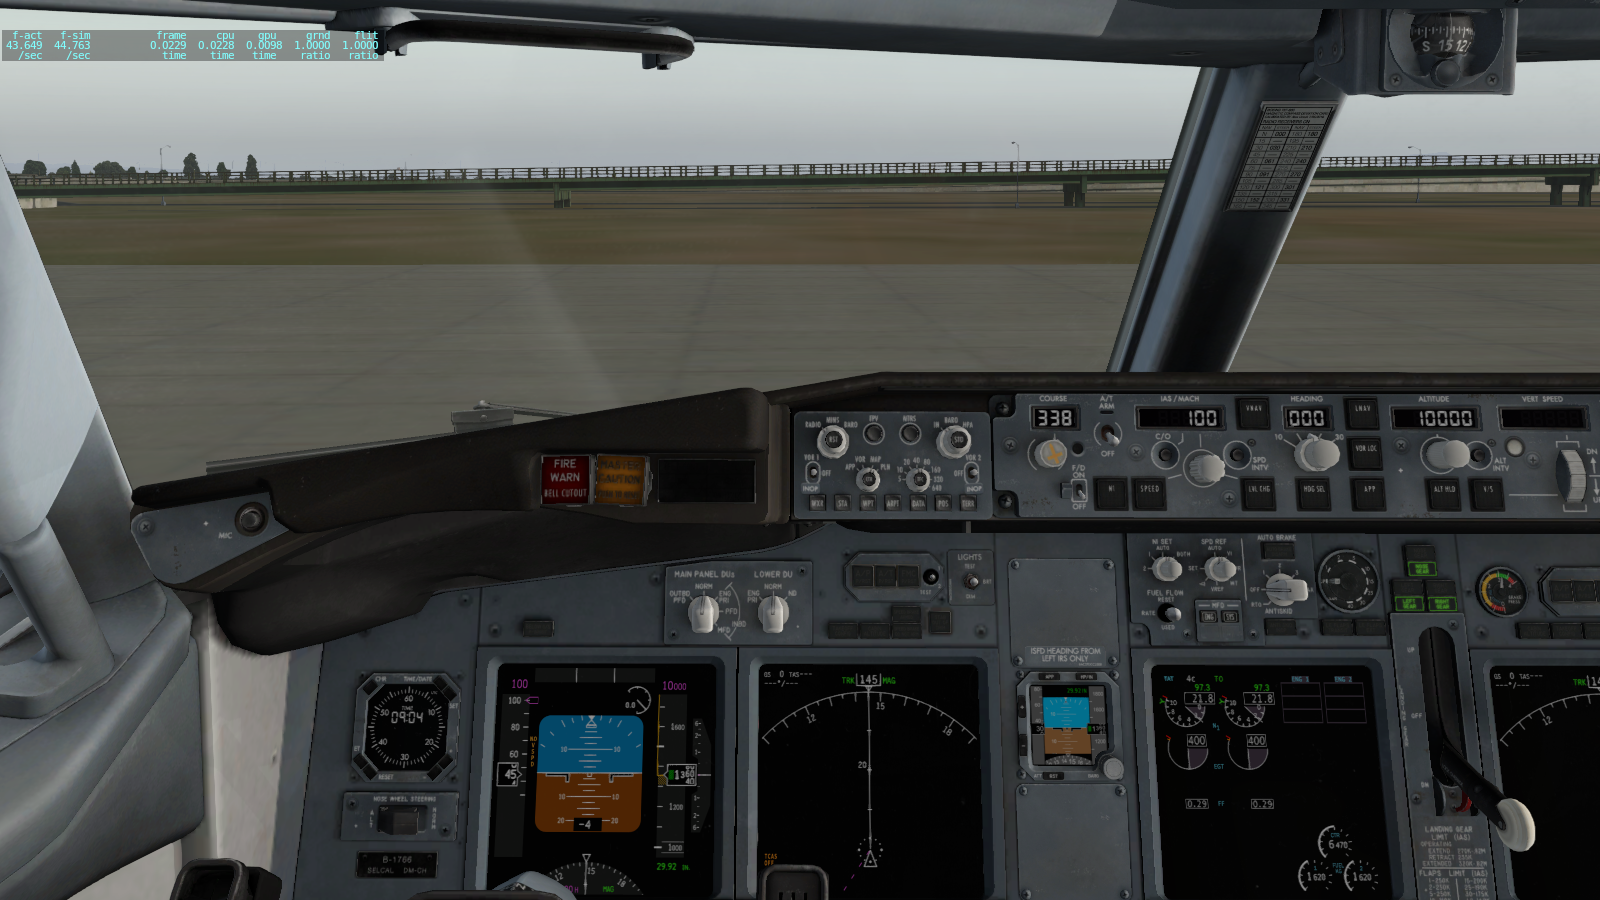 Zibo 738 eat too much frame rate - XP11 General discussion